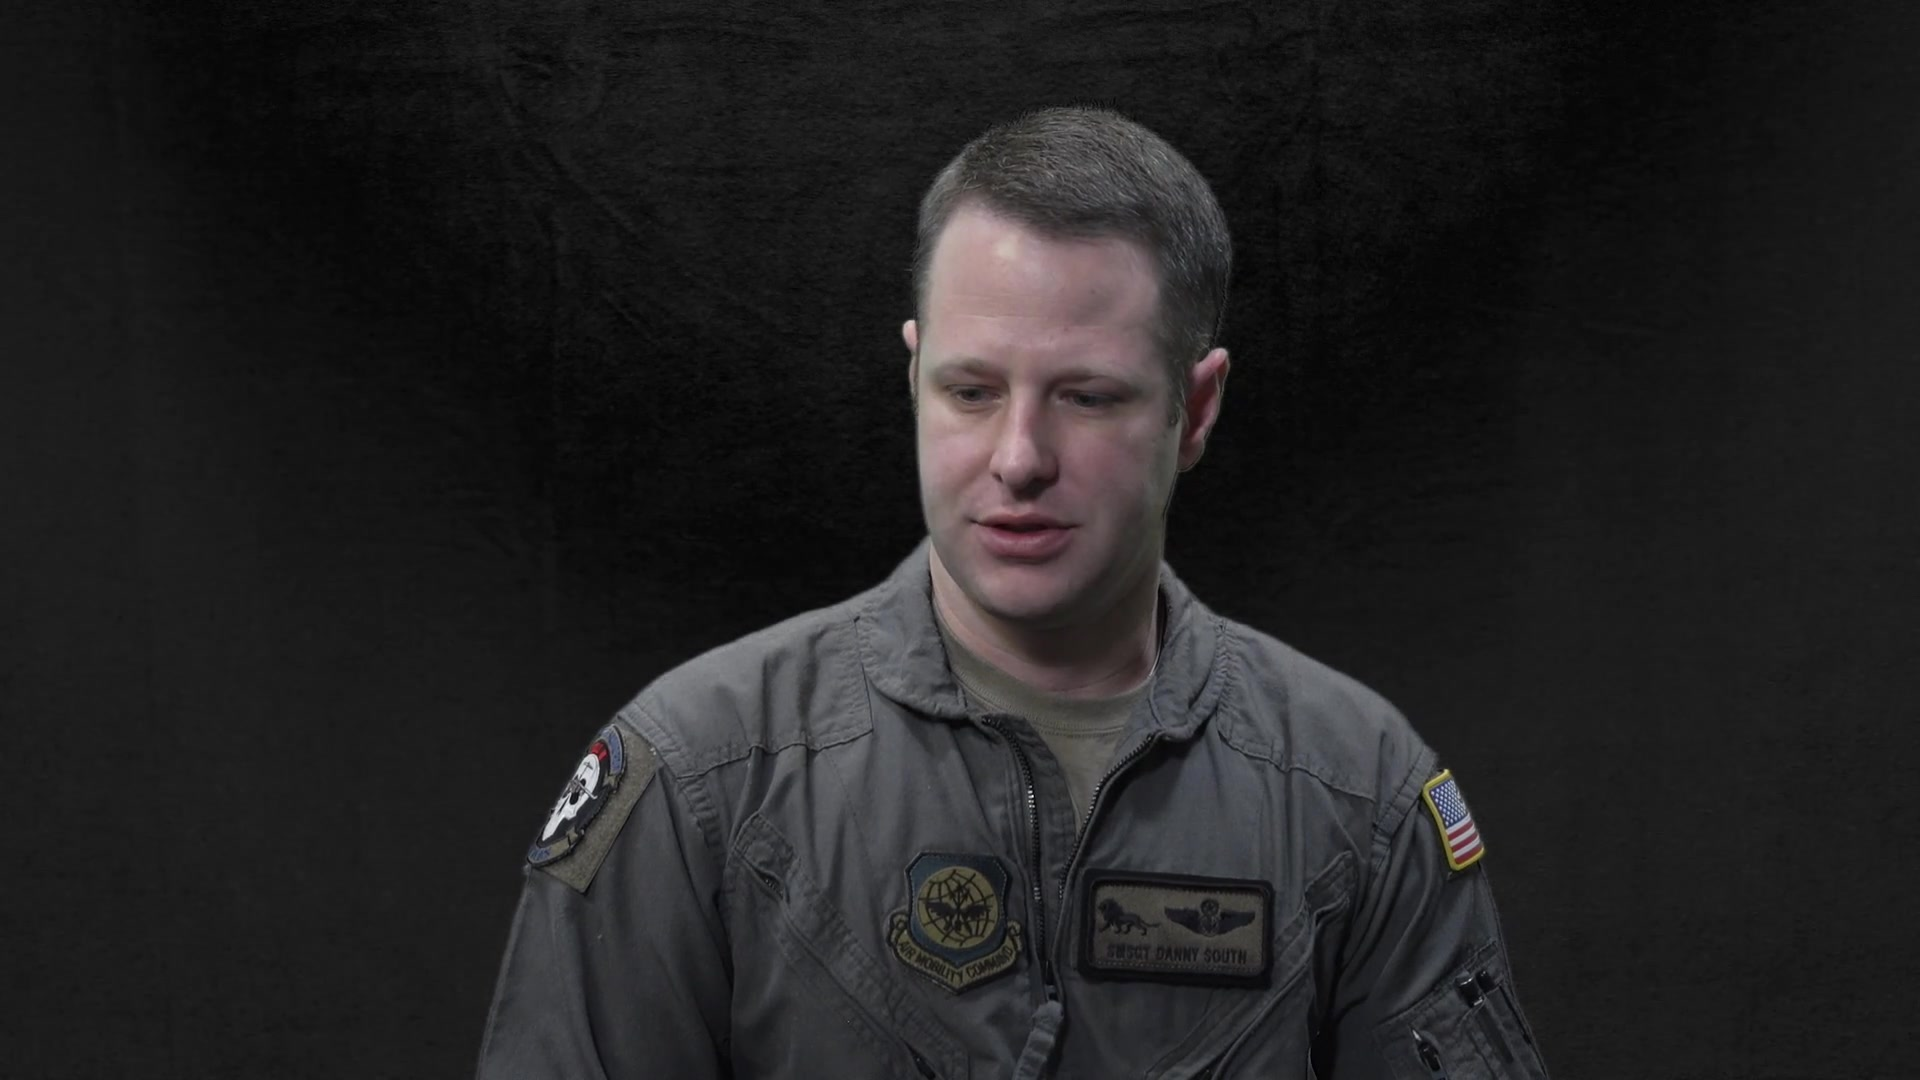 Senior Master Sgt. Danny South is open about the tremendous challenges he and his family have faced in the past few years. He speaks about that experience and how it has helped him become a better leader and a better listener when it comes to supporting his Airmen. (South is an C-17 Evaluator/Loadmaster Squadron Superintendent at JB Charleston.)